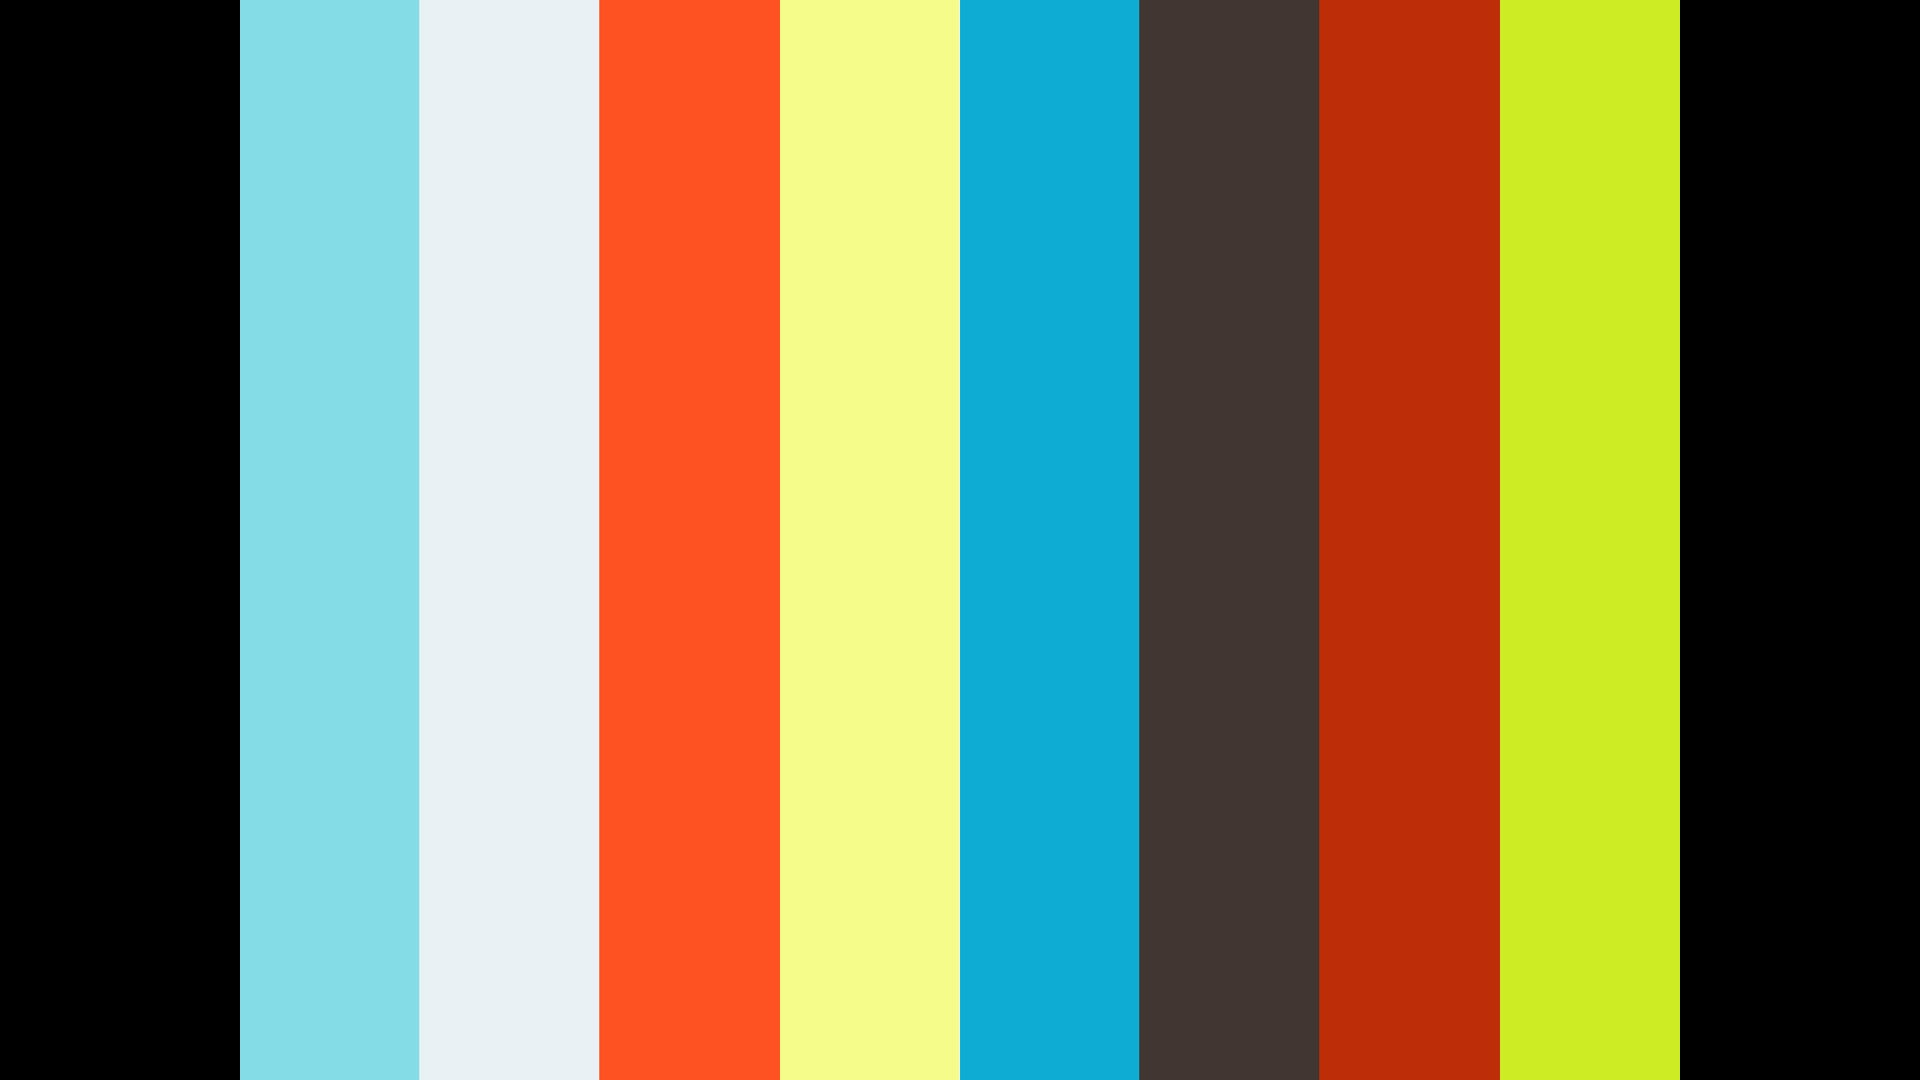 Meeting the emotional needs of young children during the COVID-19 health emergency